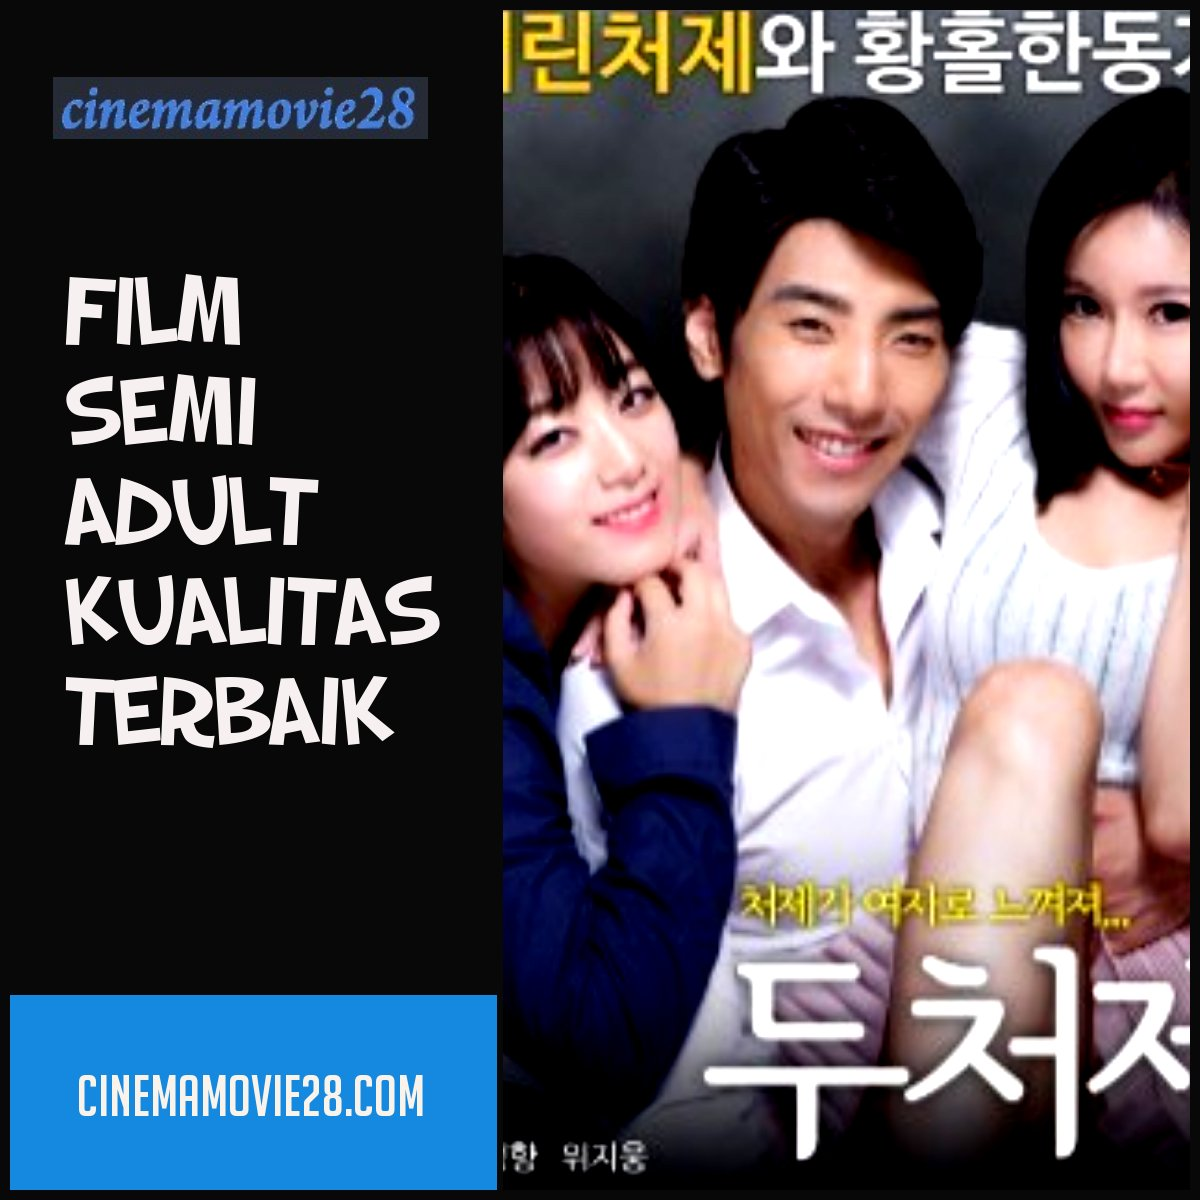 Remarkable, nonton film semi adult